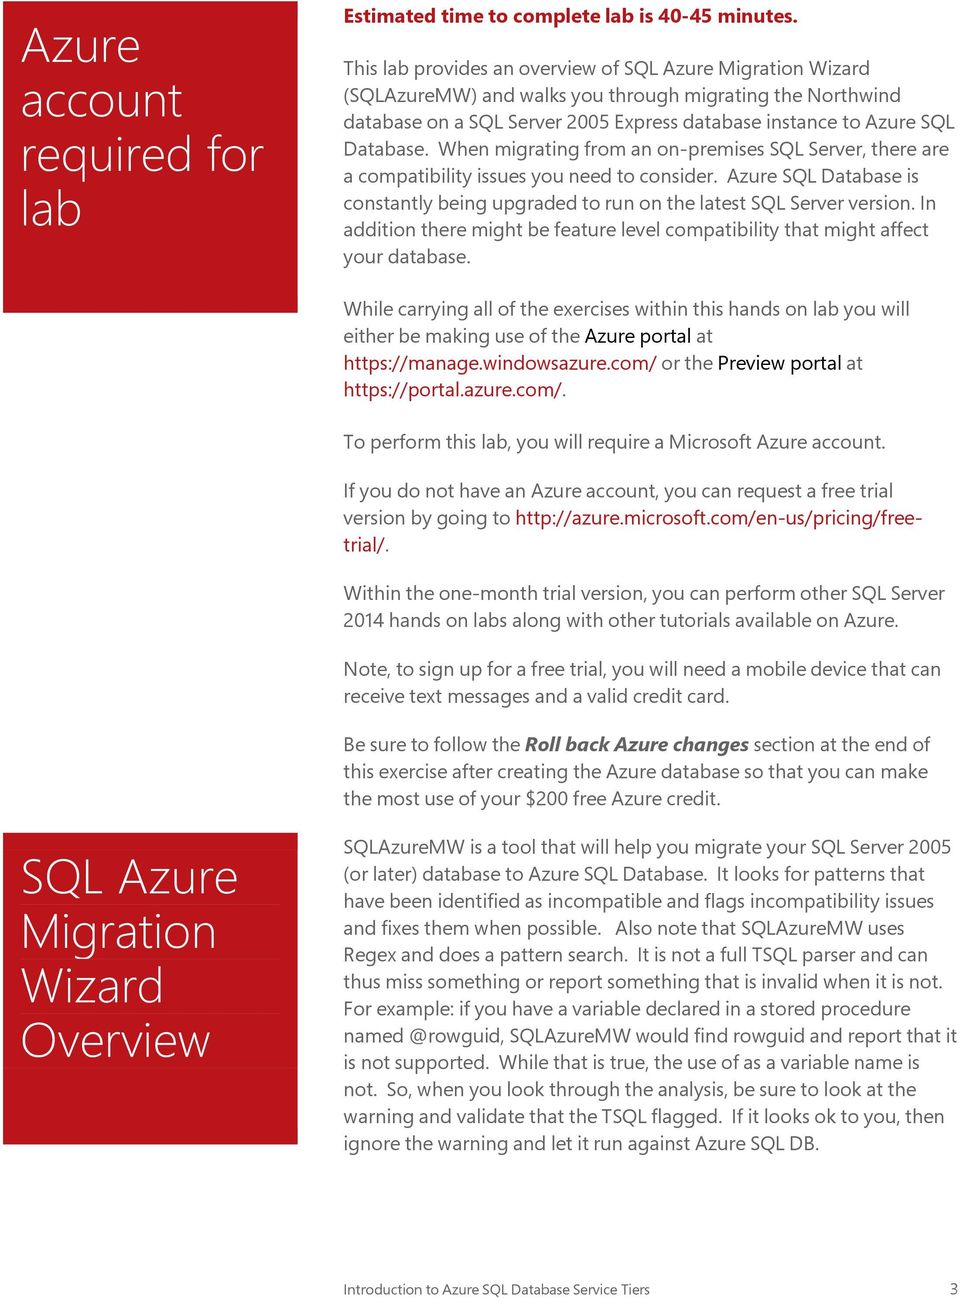 When migrating from an on-premises SQL Server, there are a compatibility issues you need to consider. Azure SQL Database is constantly being upgraded to run on the latest SQL Server version.